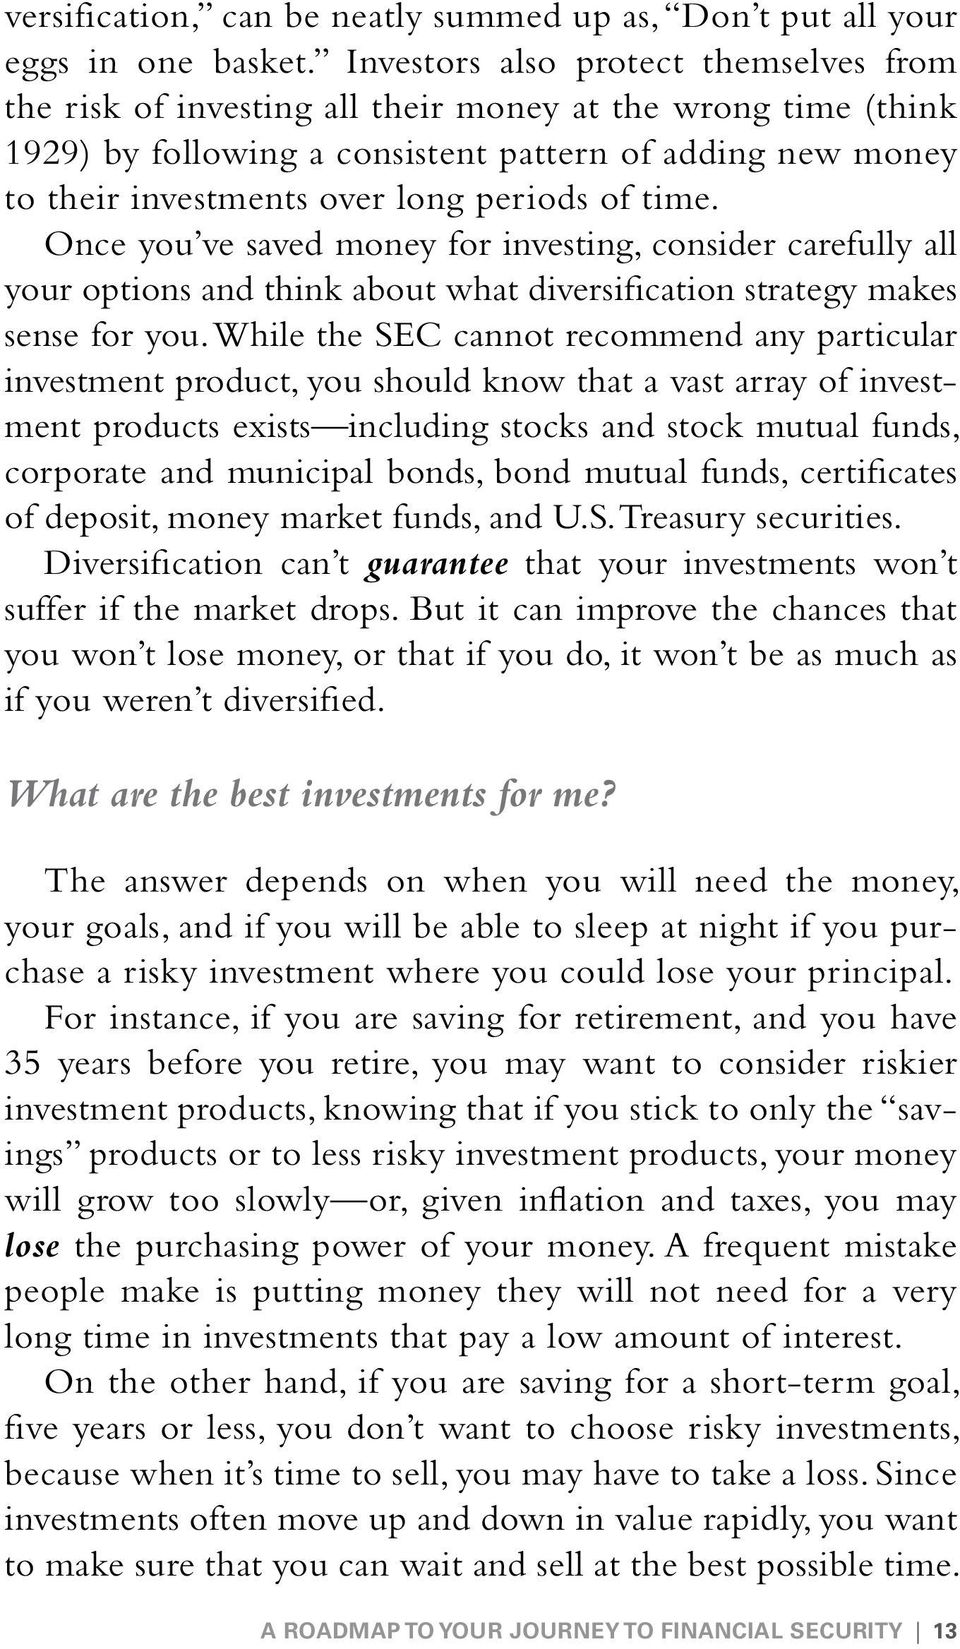 periods of time. Once you ve saved money for investing, consider carefully all your options and think about what diversification strategy makes sense for you.